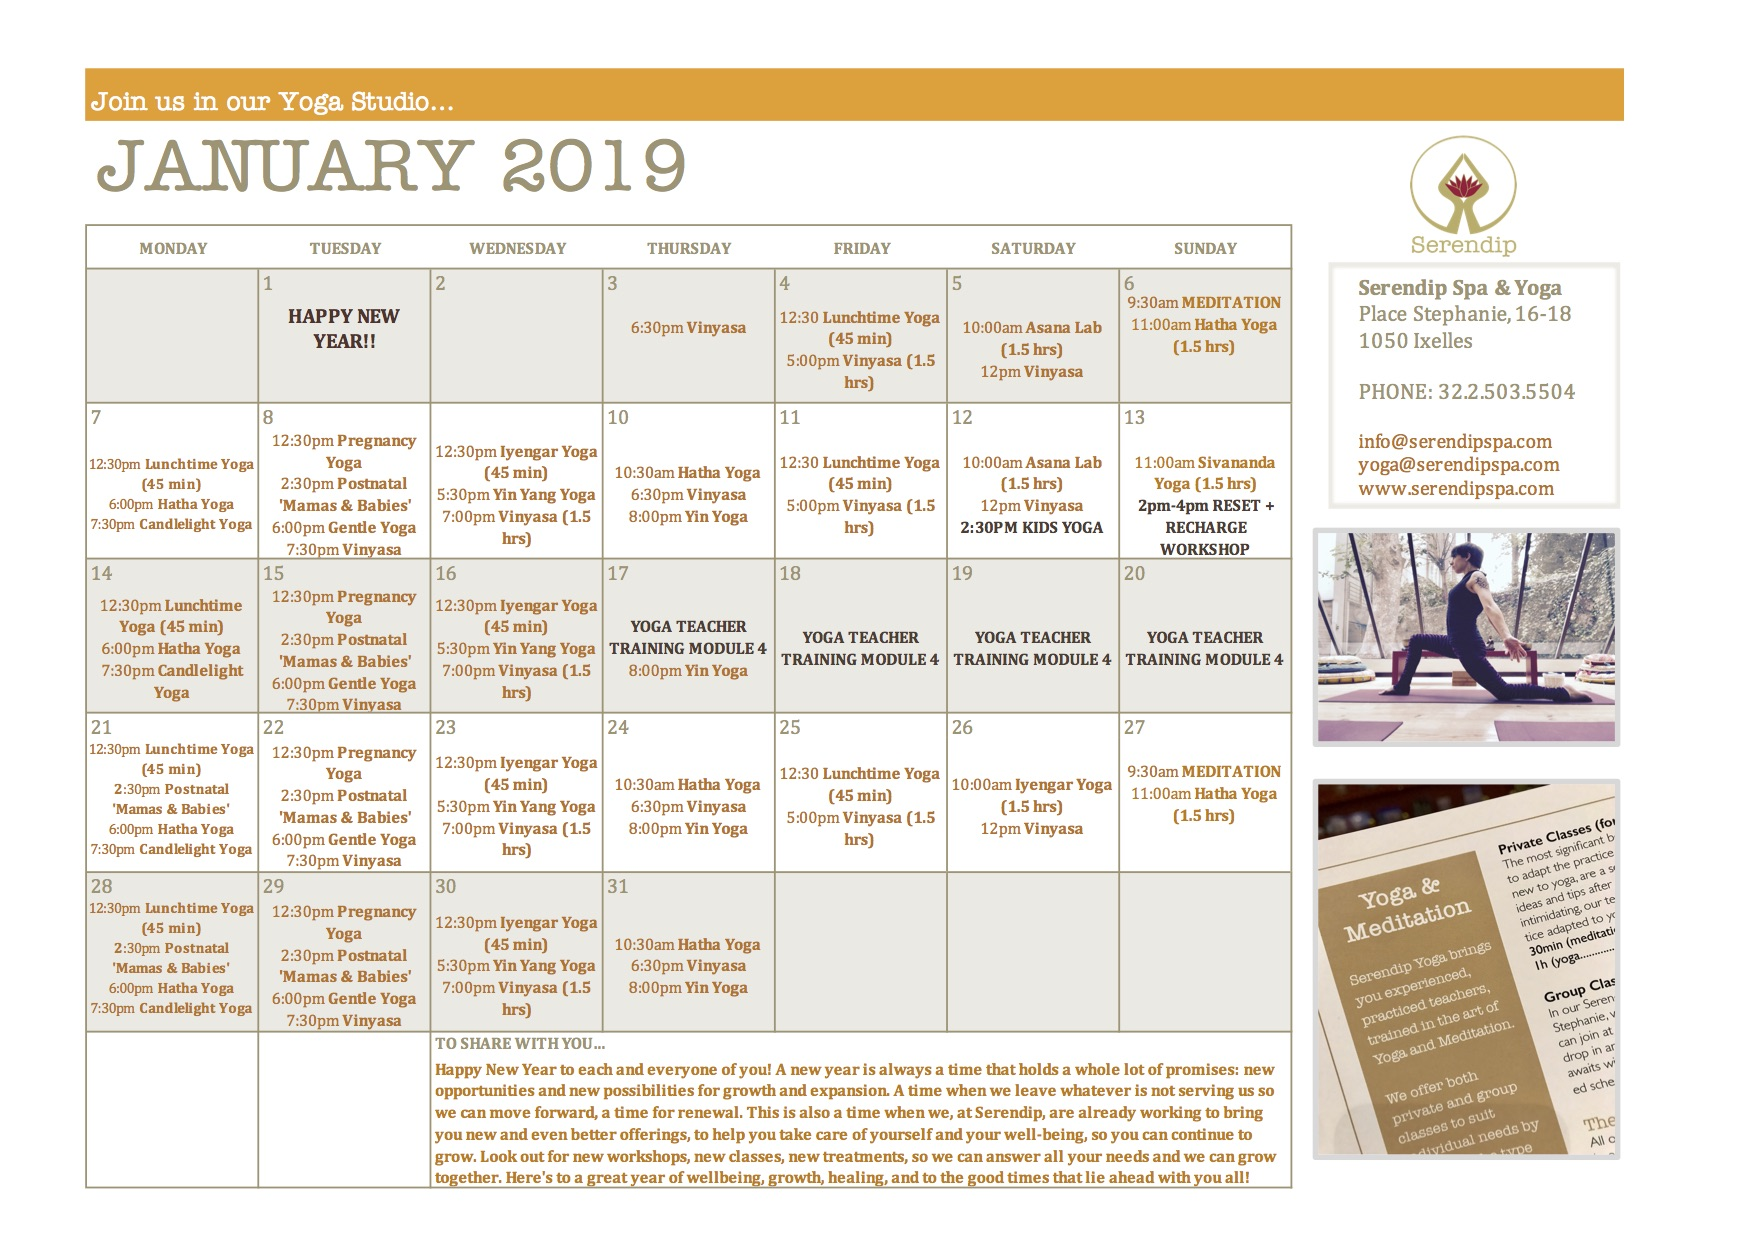 serendip spa and yoga calendar 2019_January A4 FRONT.jpg